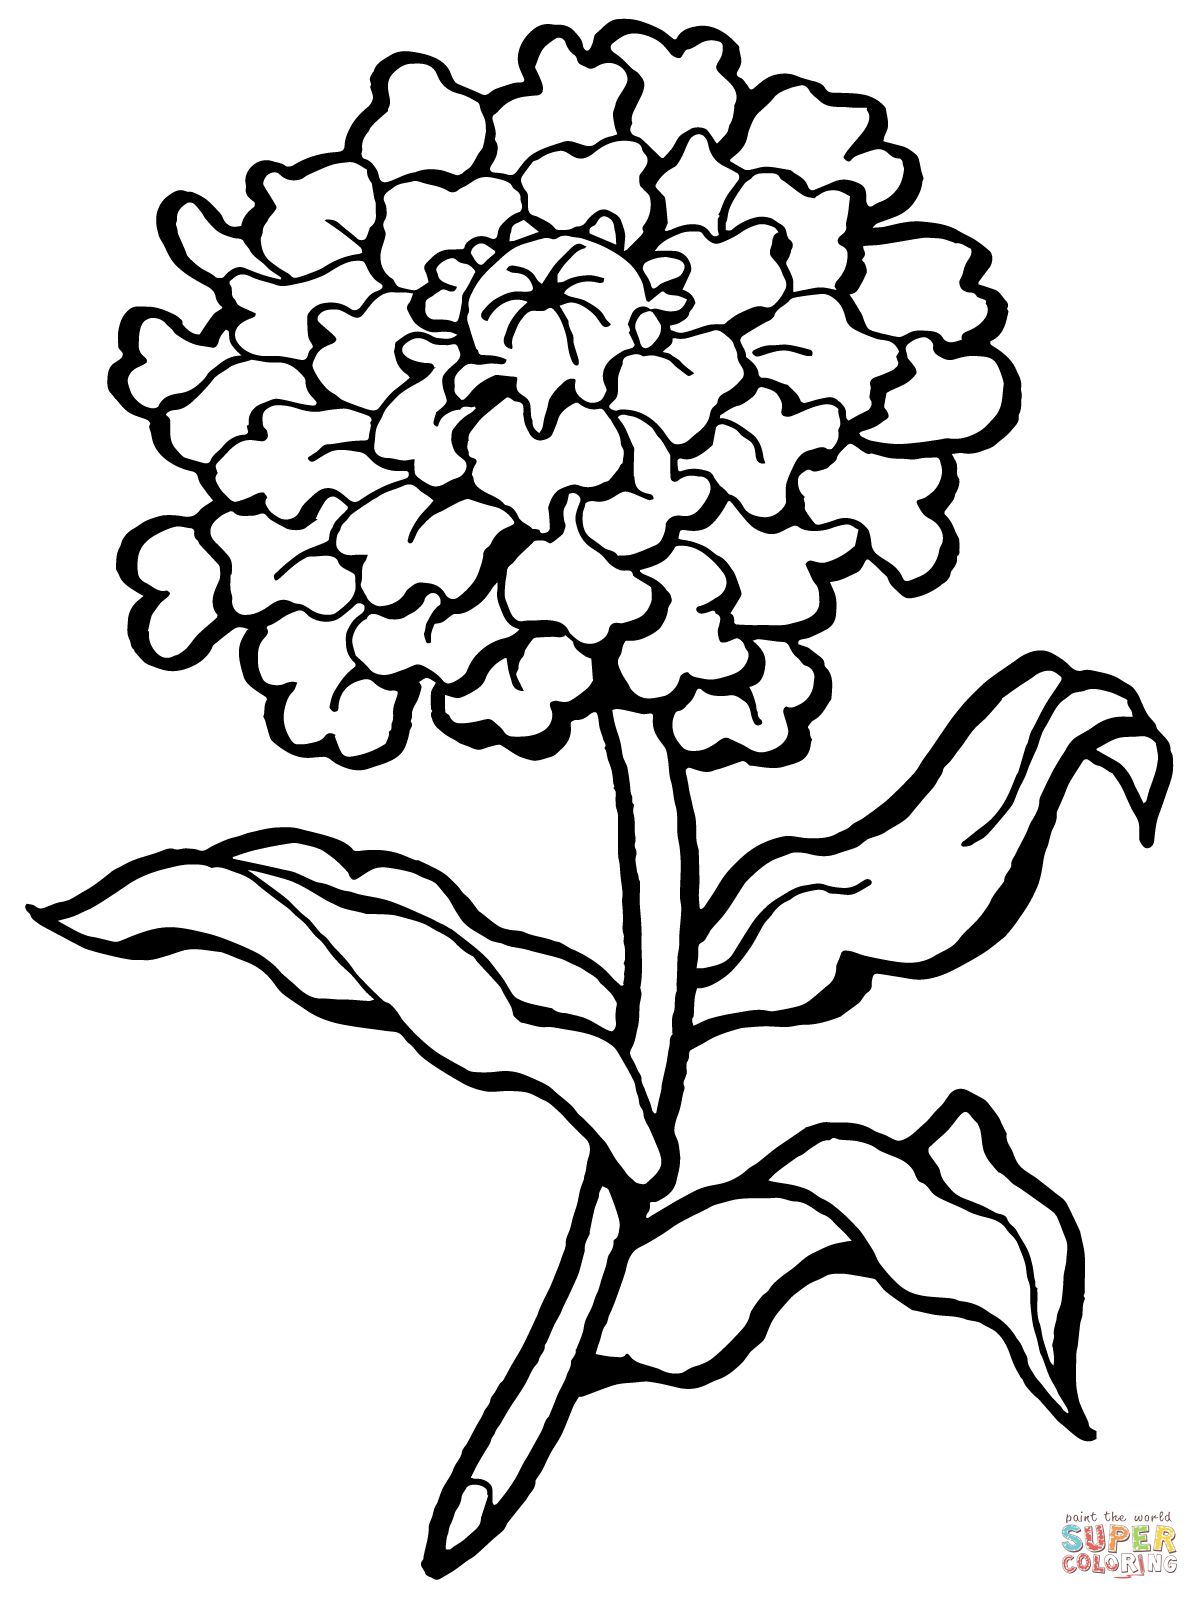 coloring outline images of flowers carnation flower outline marigold flower garden outline flowers of coloring images